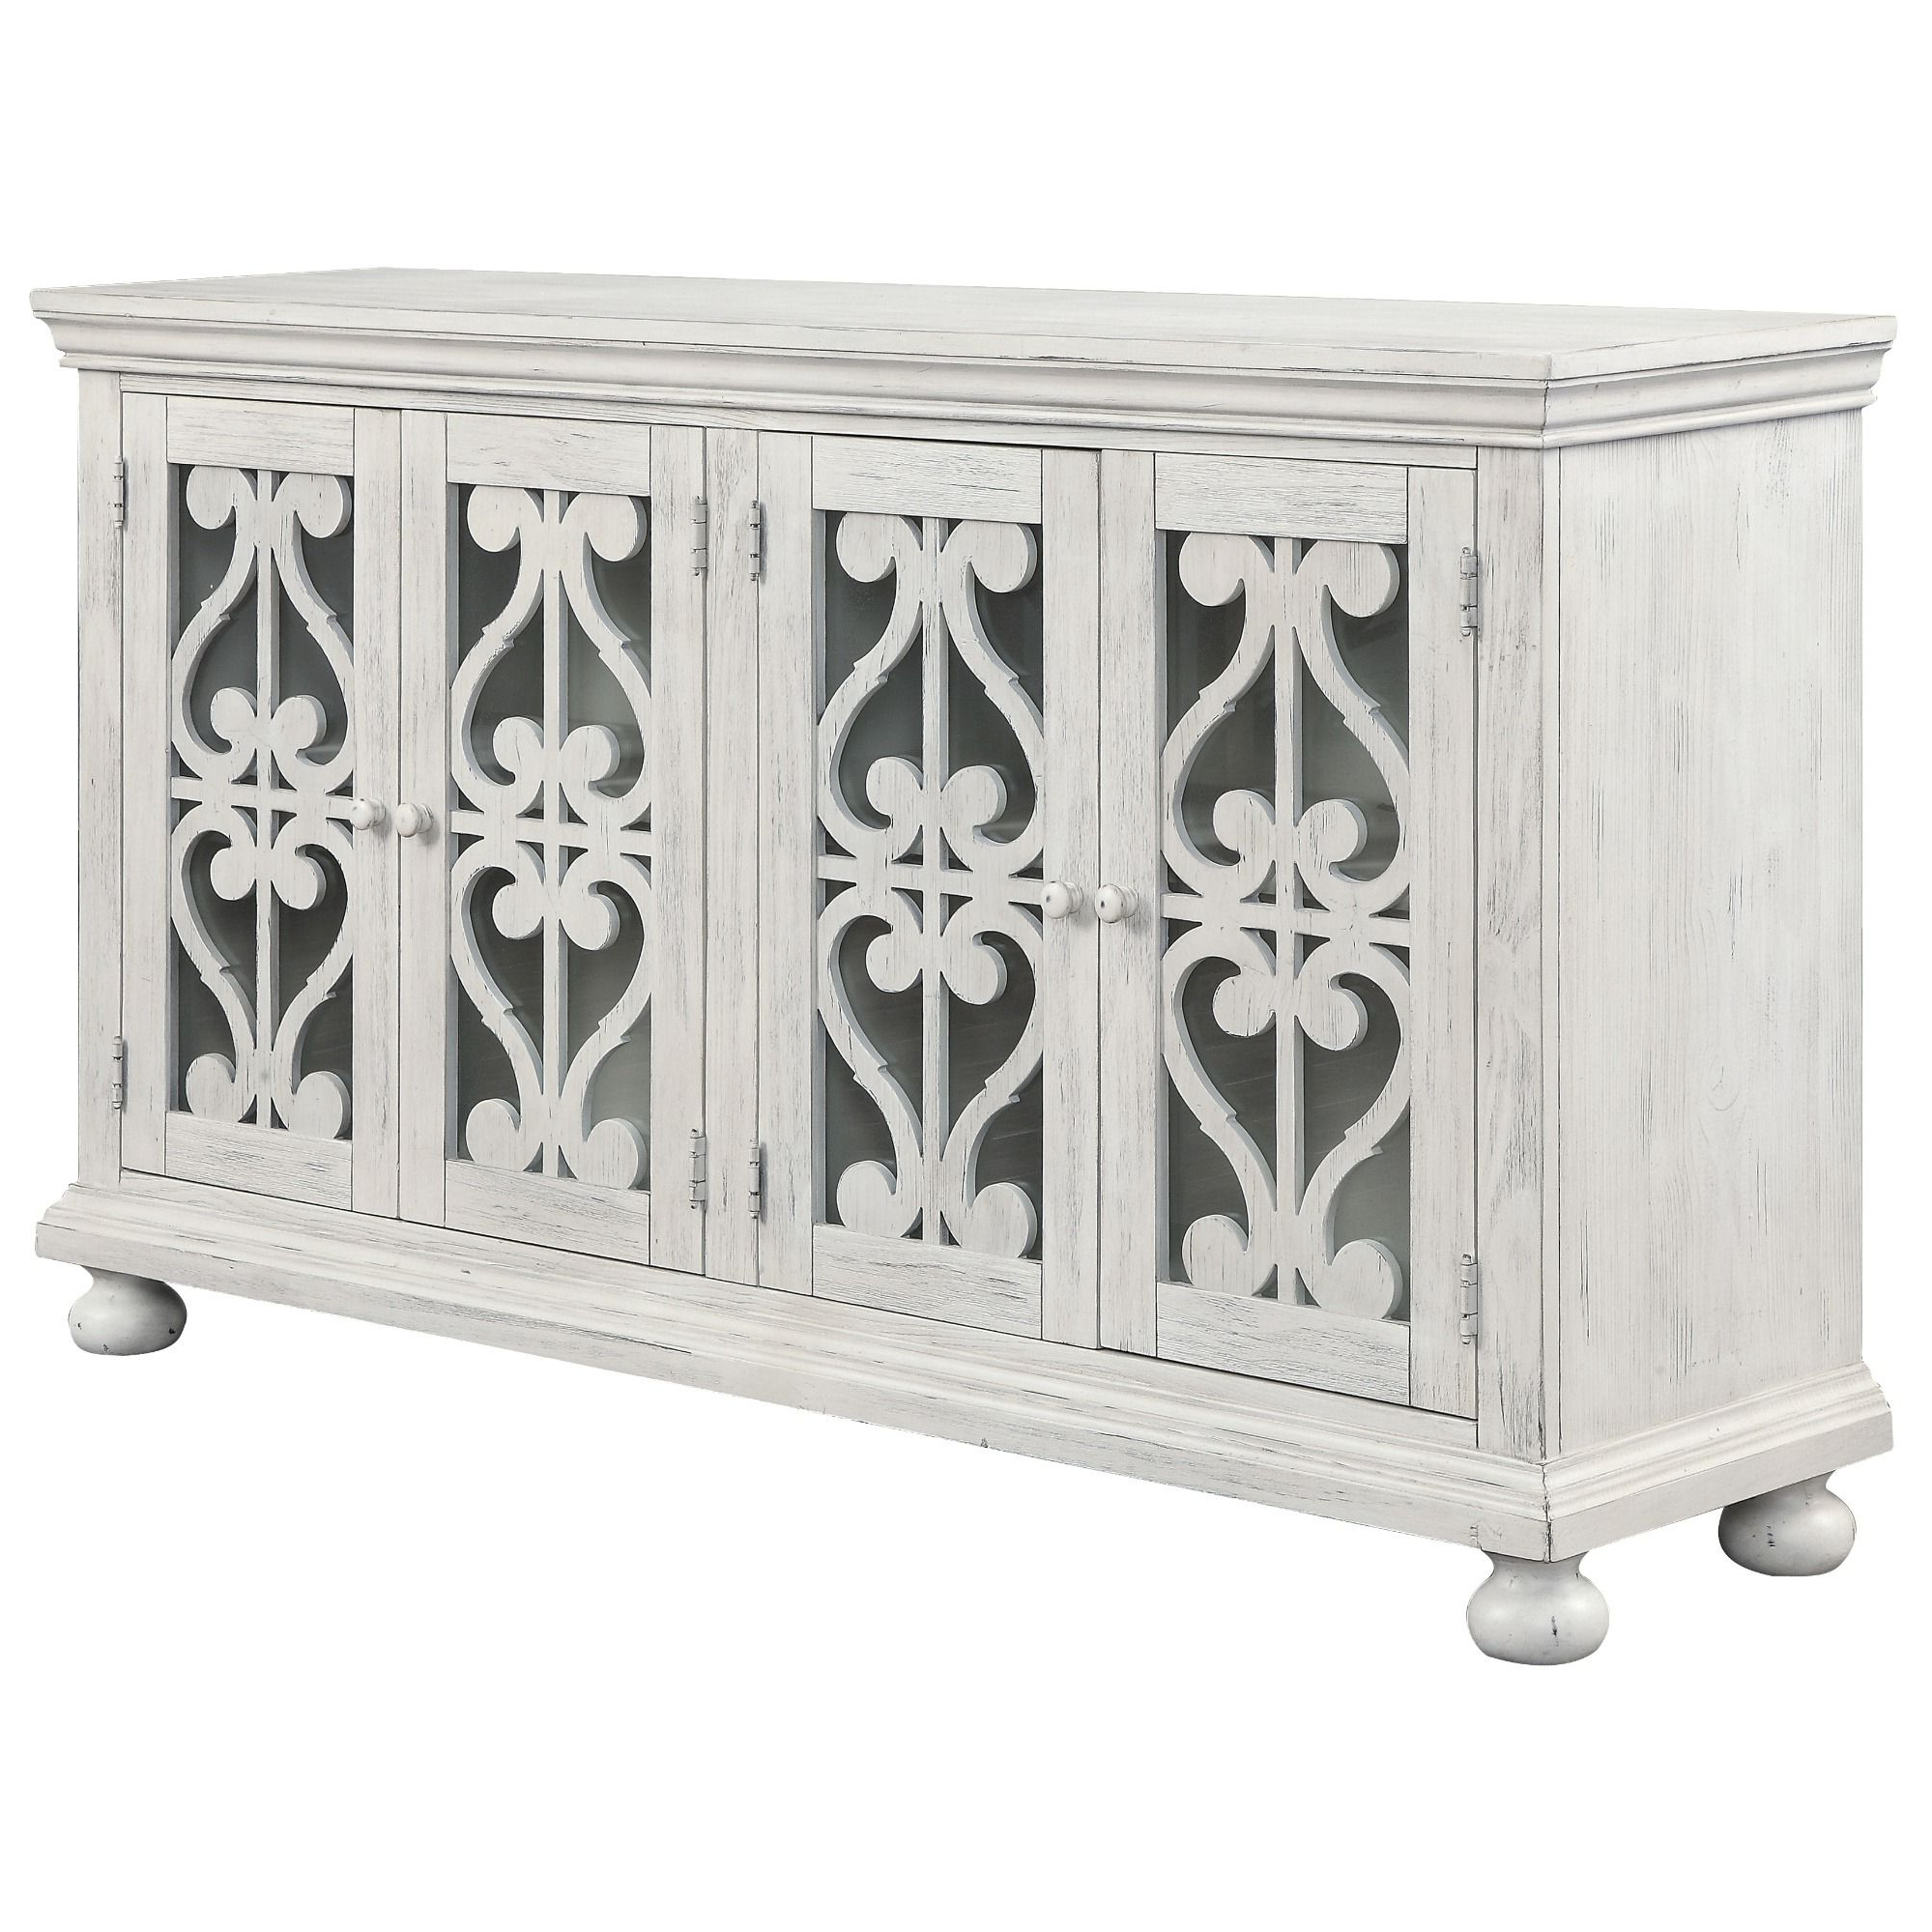 Trendy Serafino Media Credenzas Intended For The Orchard House Dining Collection Features This Stunning (View 18 of 20)